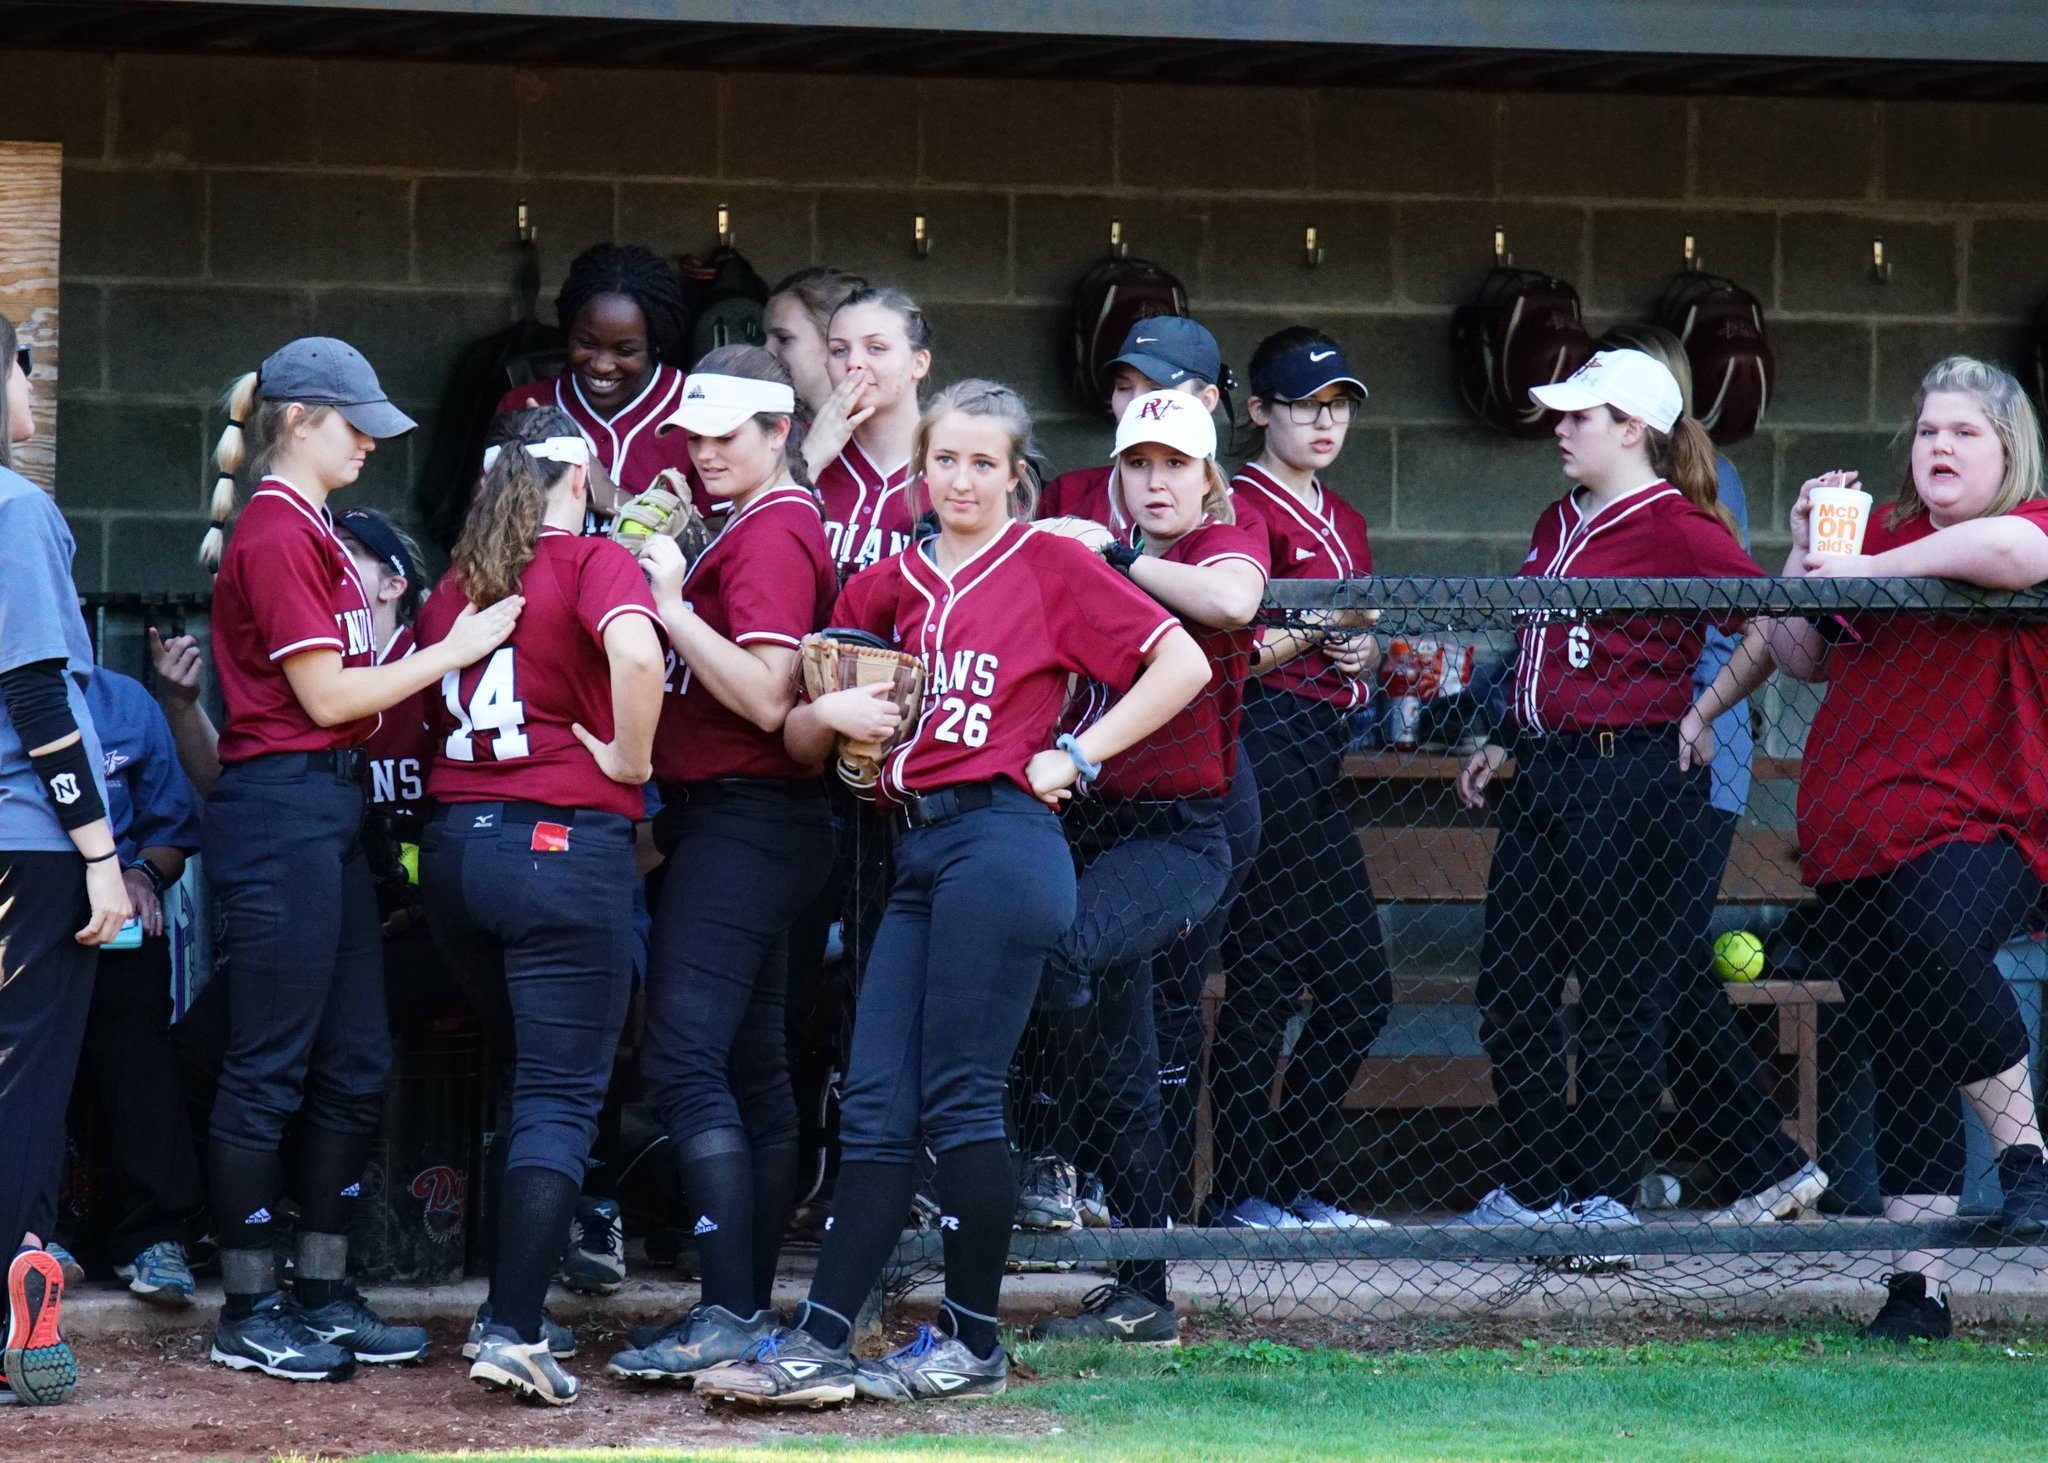 Pinson Valley falls to Hueytown in extra innings